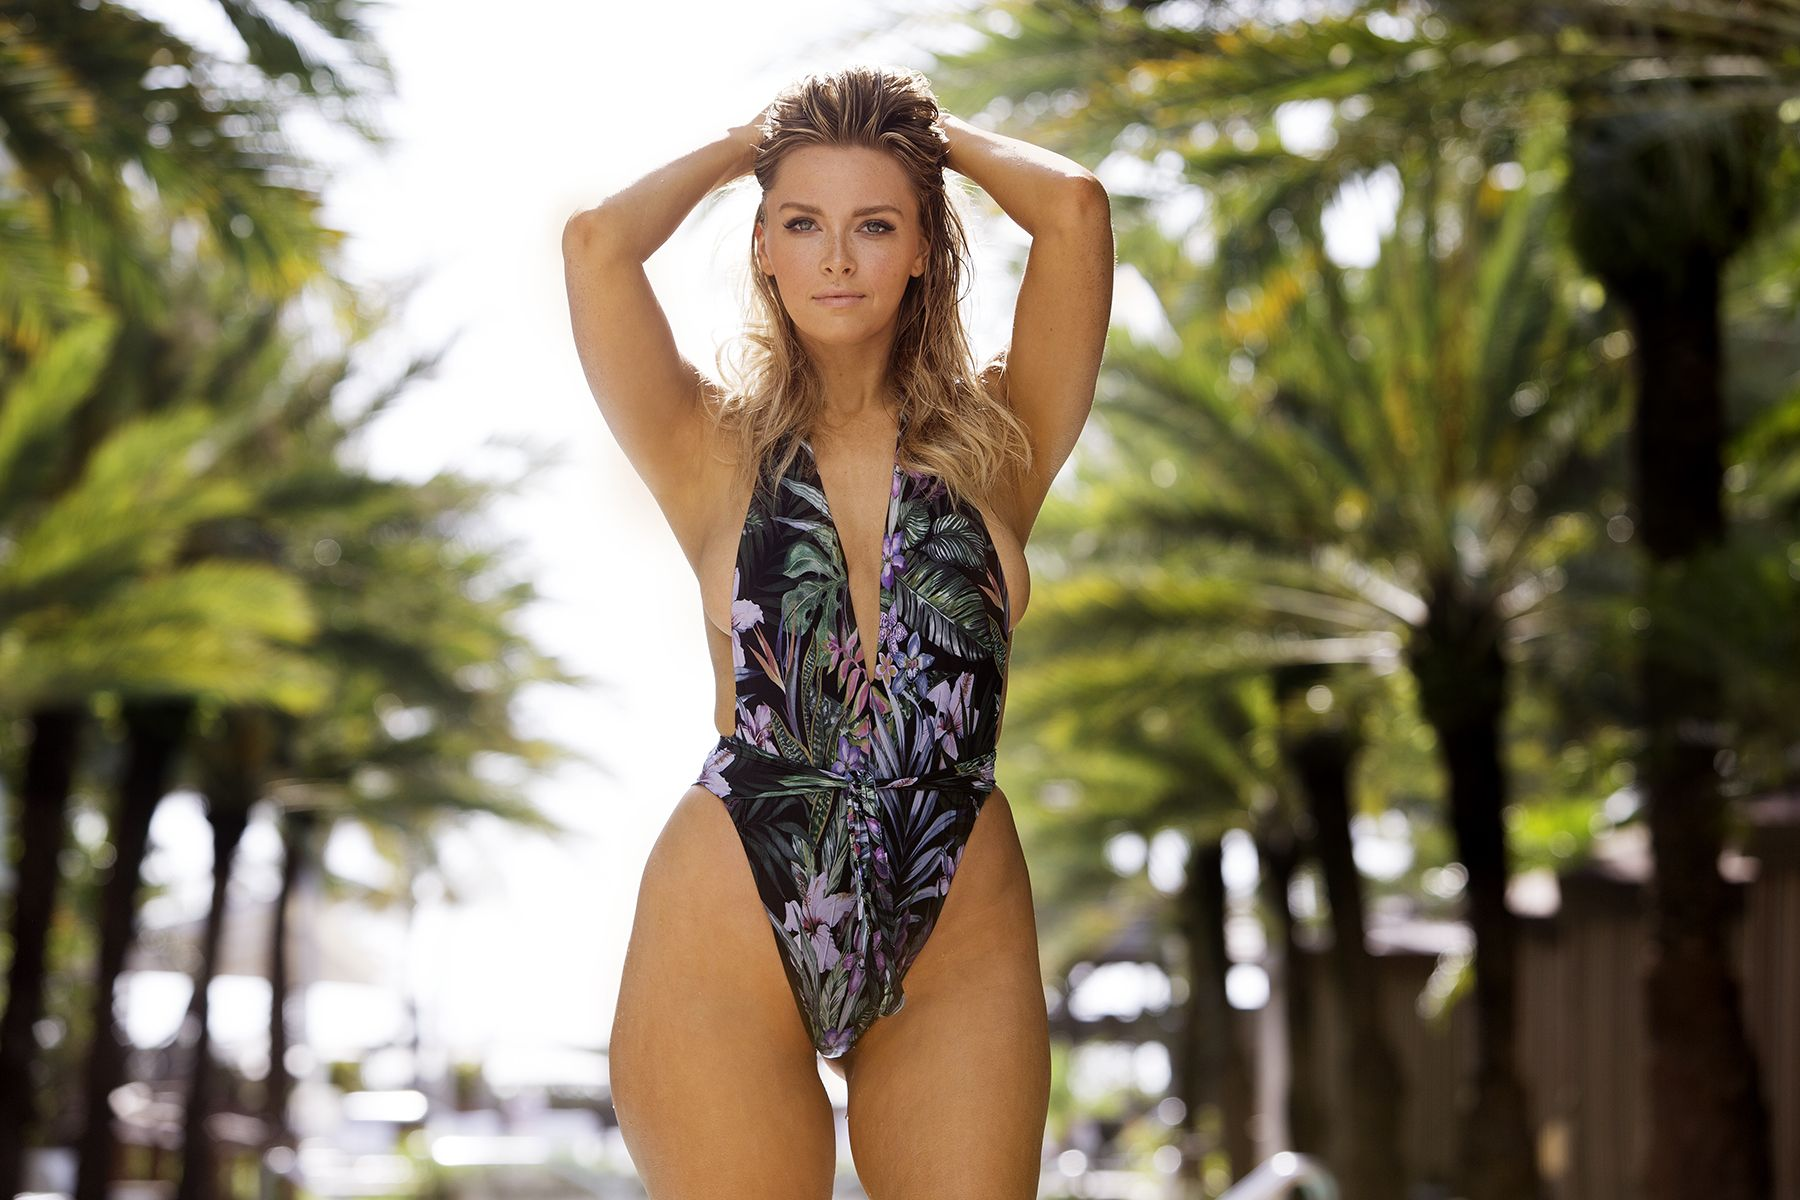 SI Swimsuit Open Casting Call Top 15 Camille Kostek